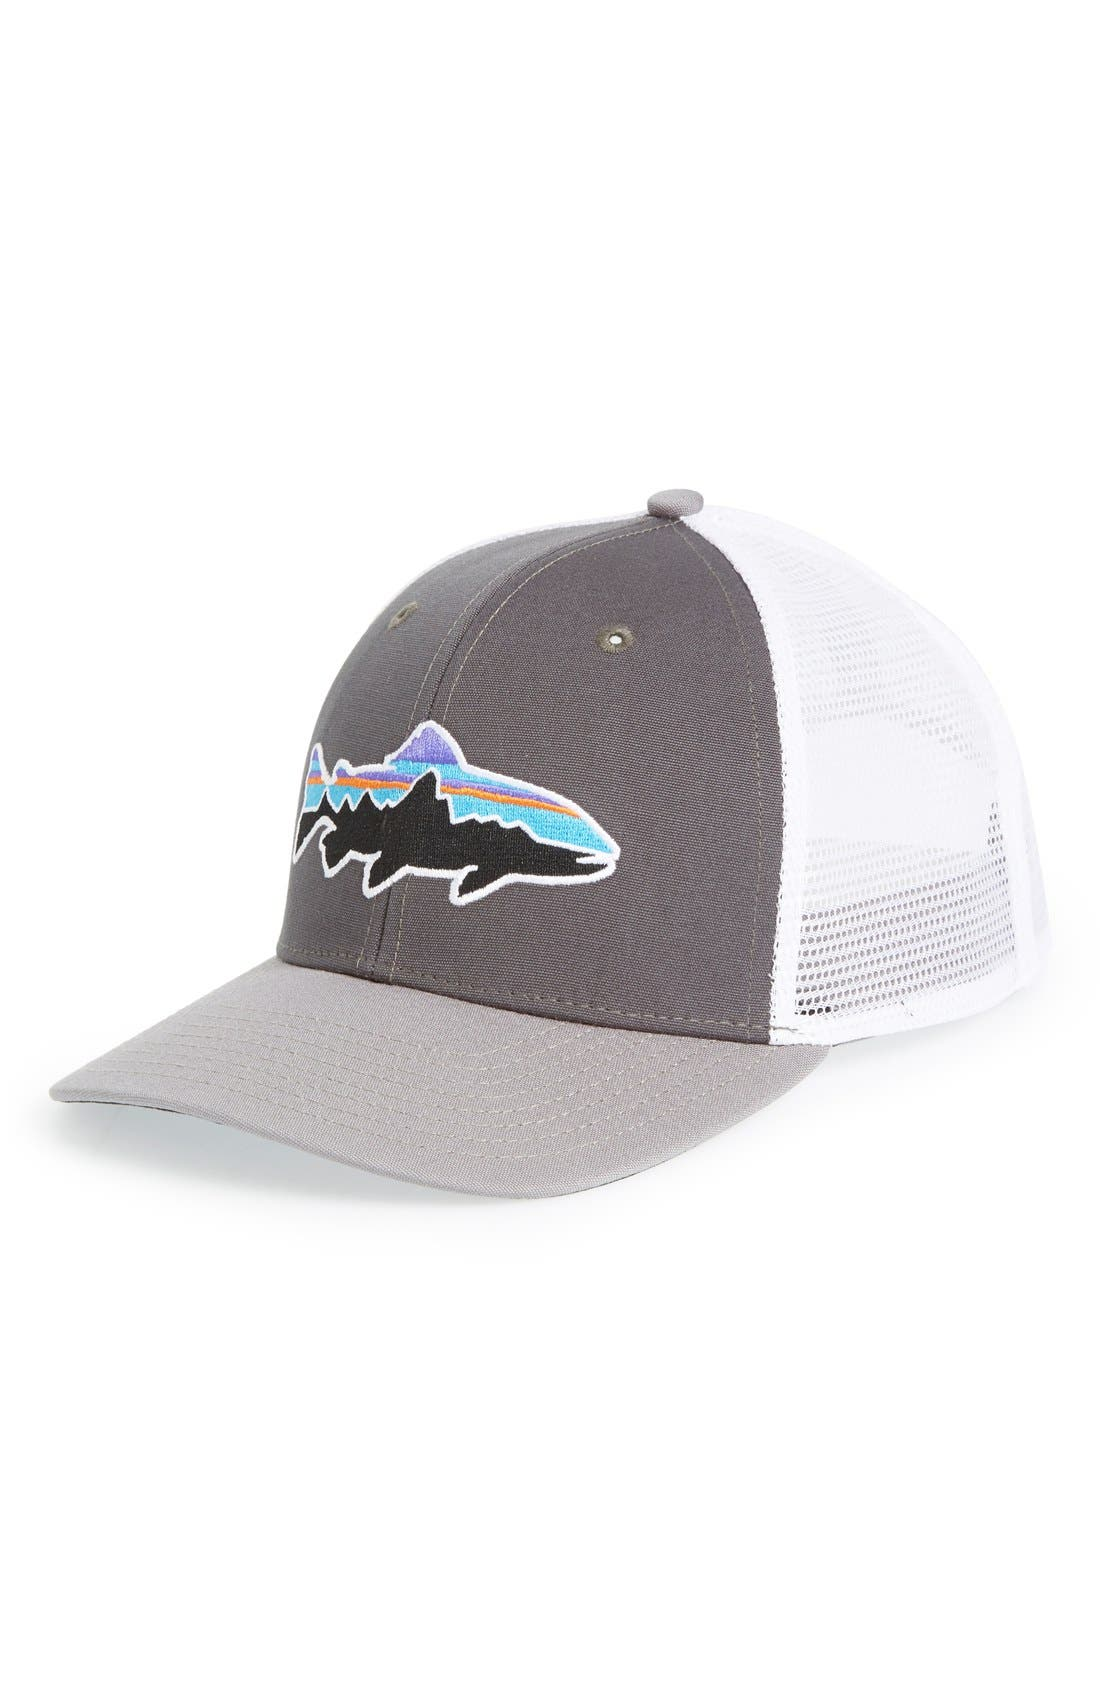 Patagonia  Fitz Roy - Trout  Trucker Hat - Grey In Forge Grey  Feather Grey   011182067ce4